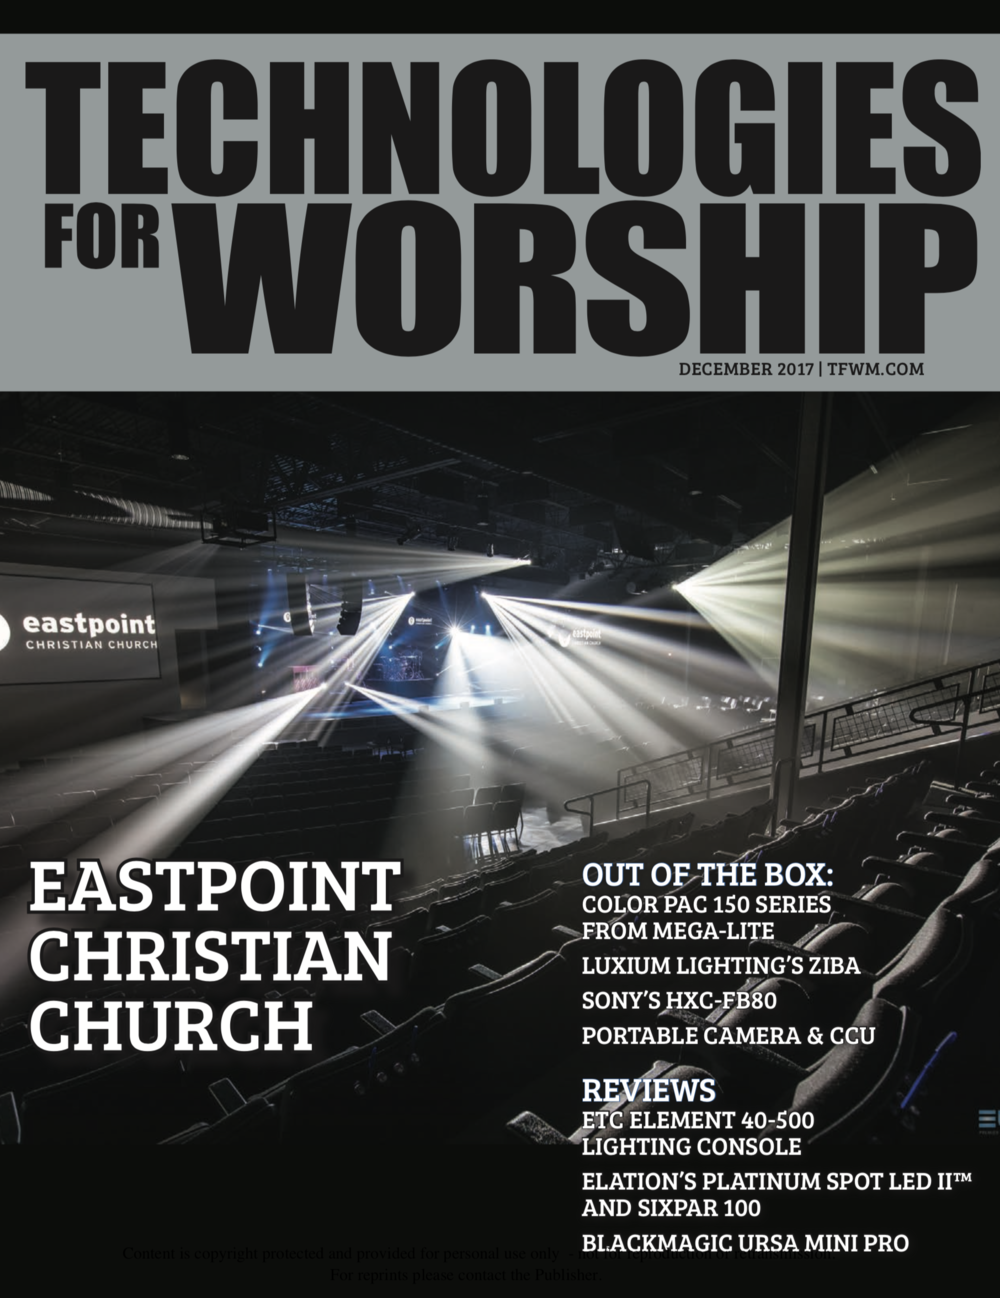 Front Page Article in Technologies for Worship Magazine - Photo By Tim Messina/Events United